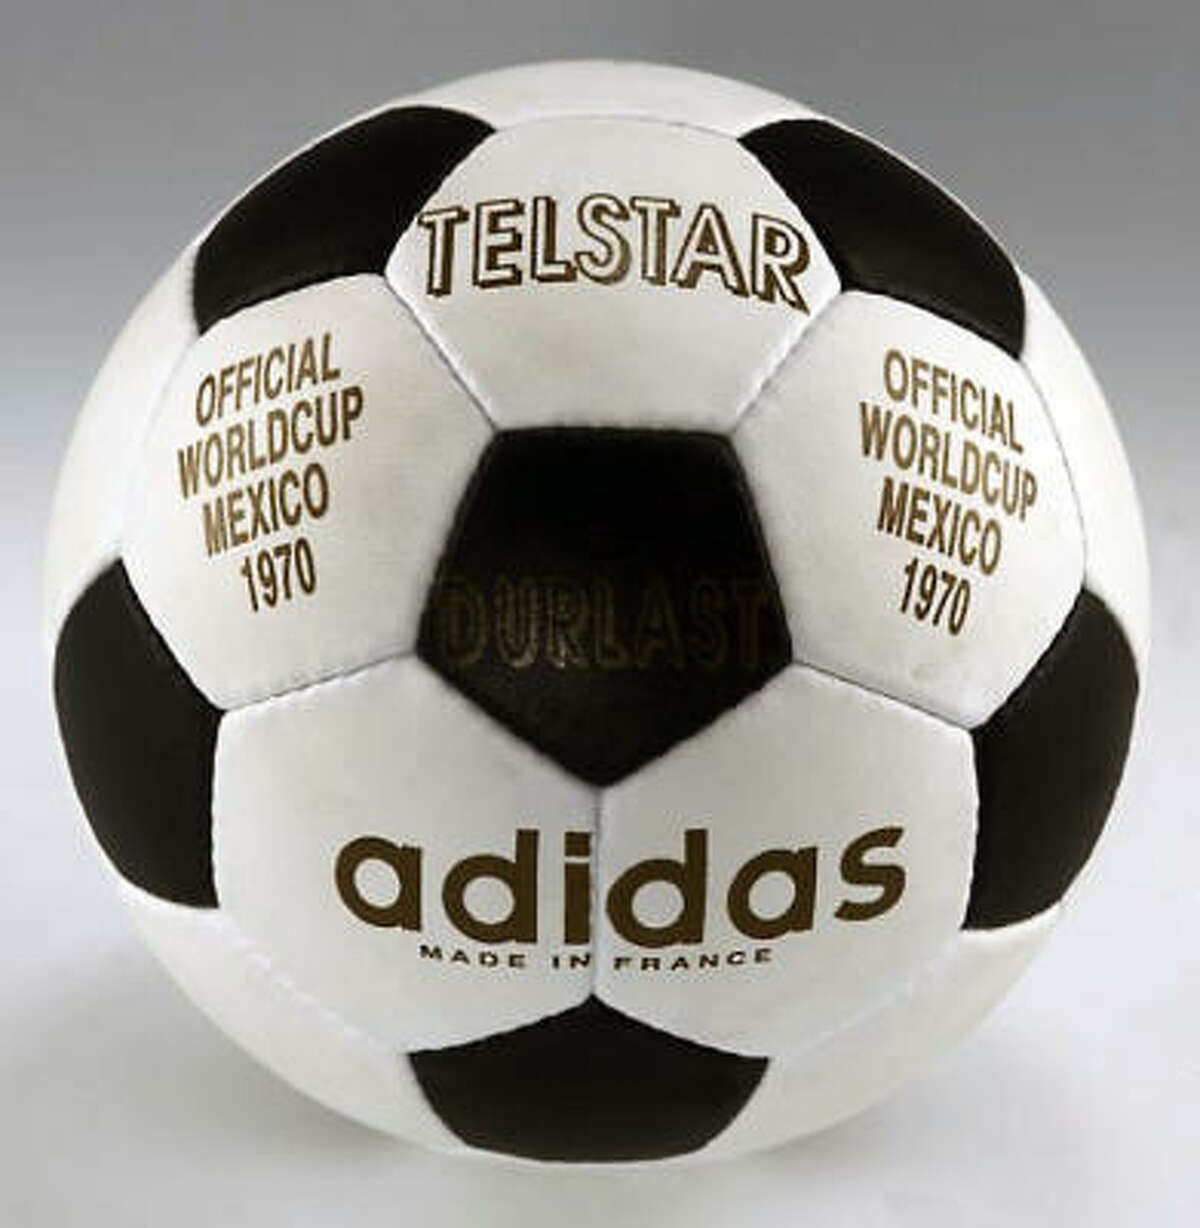 Mexico 1970: Telstar The Telstar was the first ball specially made for the World Cup. Telstar stood for Star of Television and was the first ball with 32 black and white panels. The contrasting colors made it easier to be seen on TV, and the 1970 Cup was the first to be broadcast live.